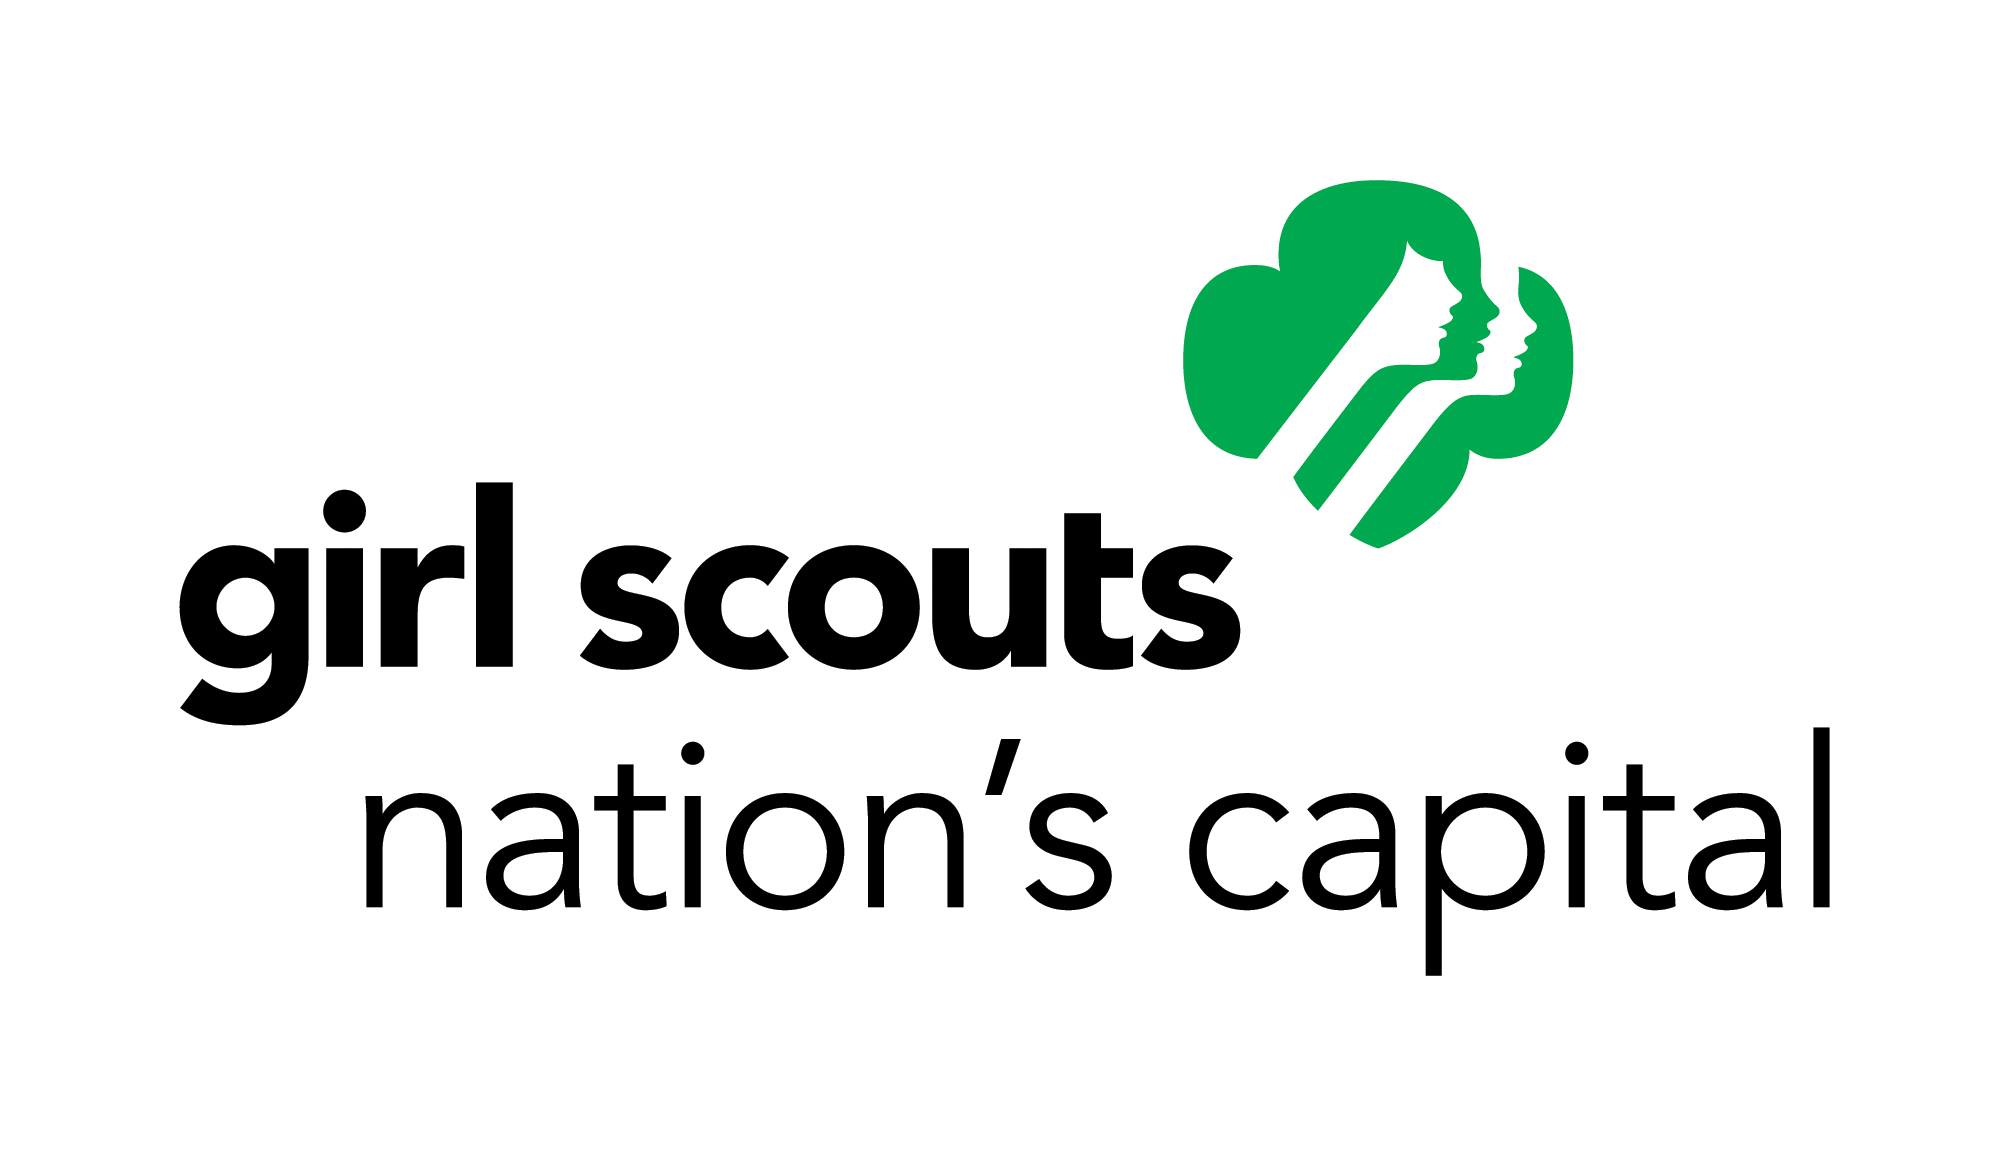 The Girl Scout Council of the Nation's Capital (GSCNC)   engaged Sharp Insight on a Focus Group Initiative. This initiative involved the development of a focus group guide and toolkit, the implementation of a comprehensive focus group training for staff, and support with theming, analyzing, and reporting the focus group data.